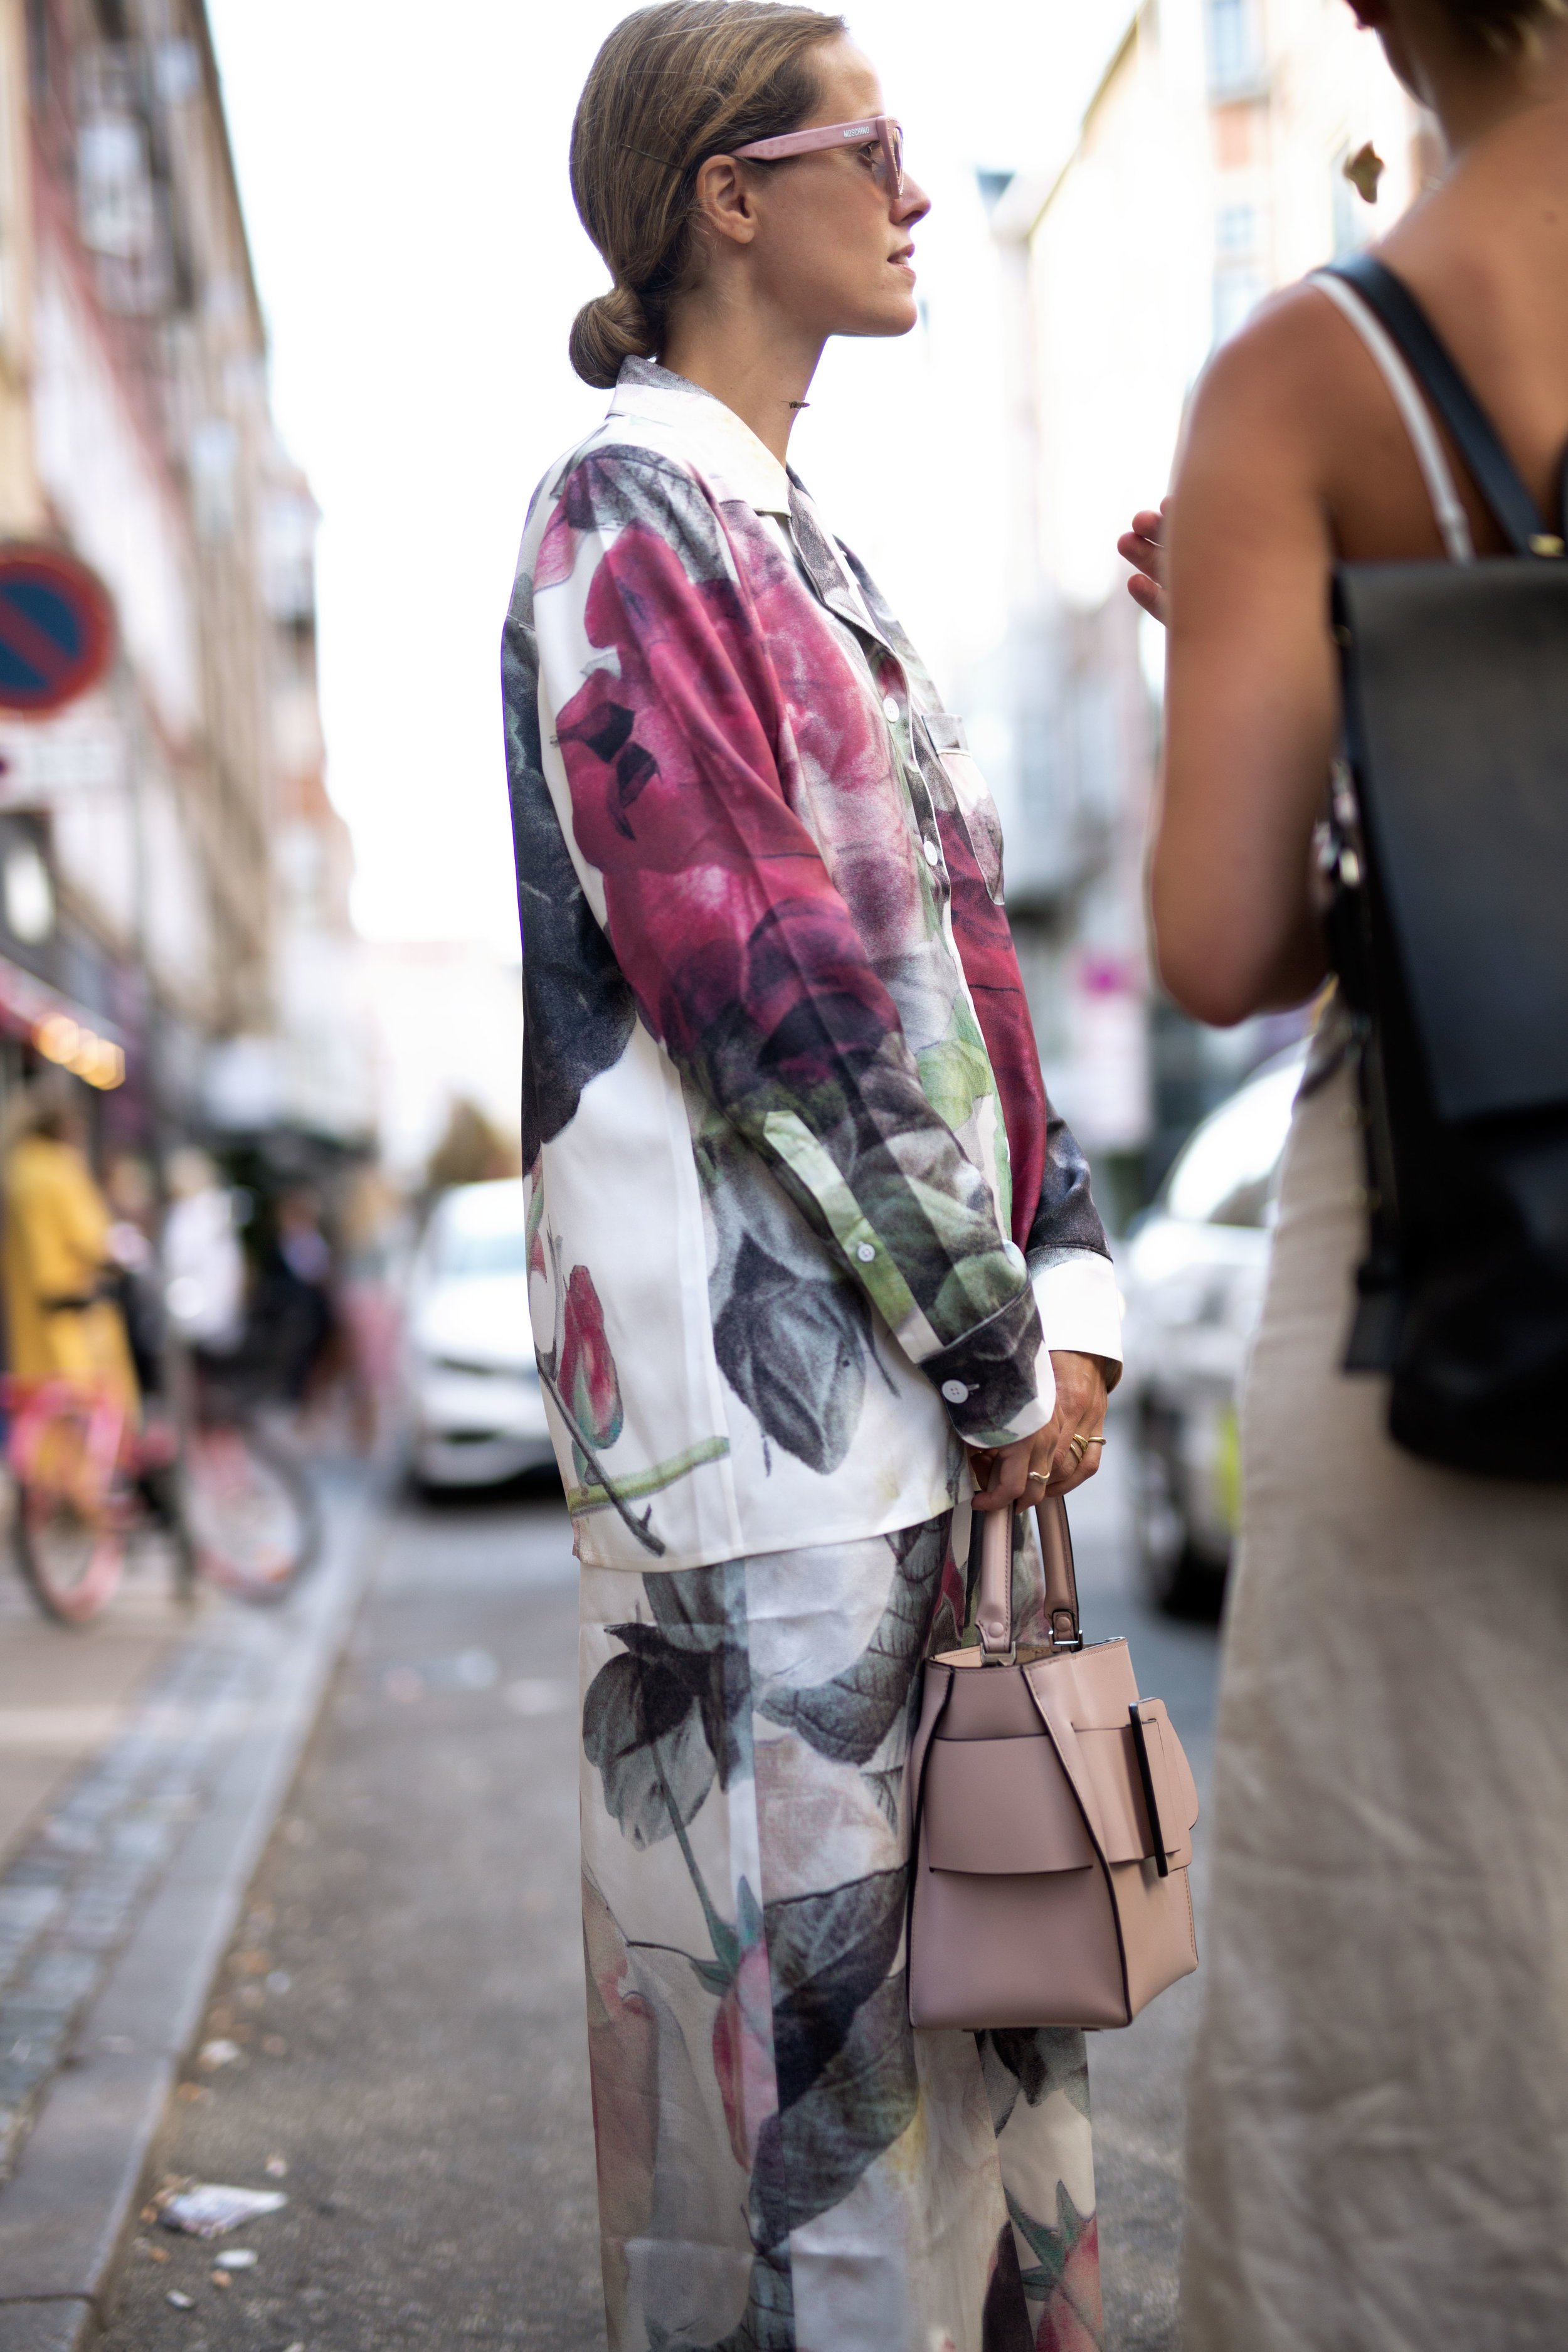 TheStreetland_Copenhagen_Fashion_Week_SS19_73.jpg